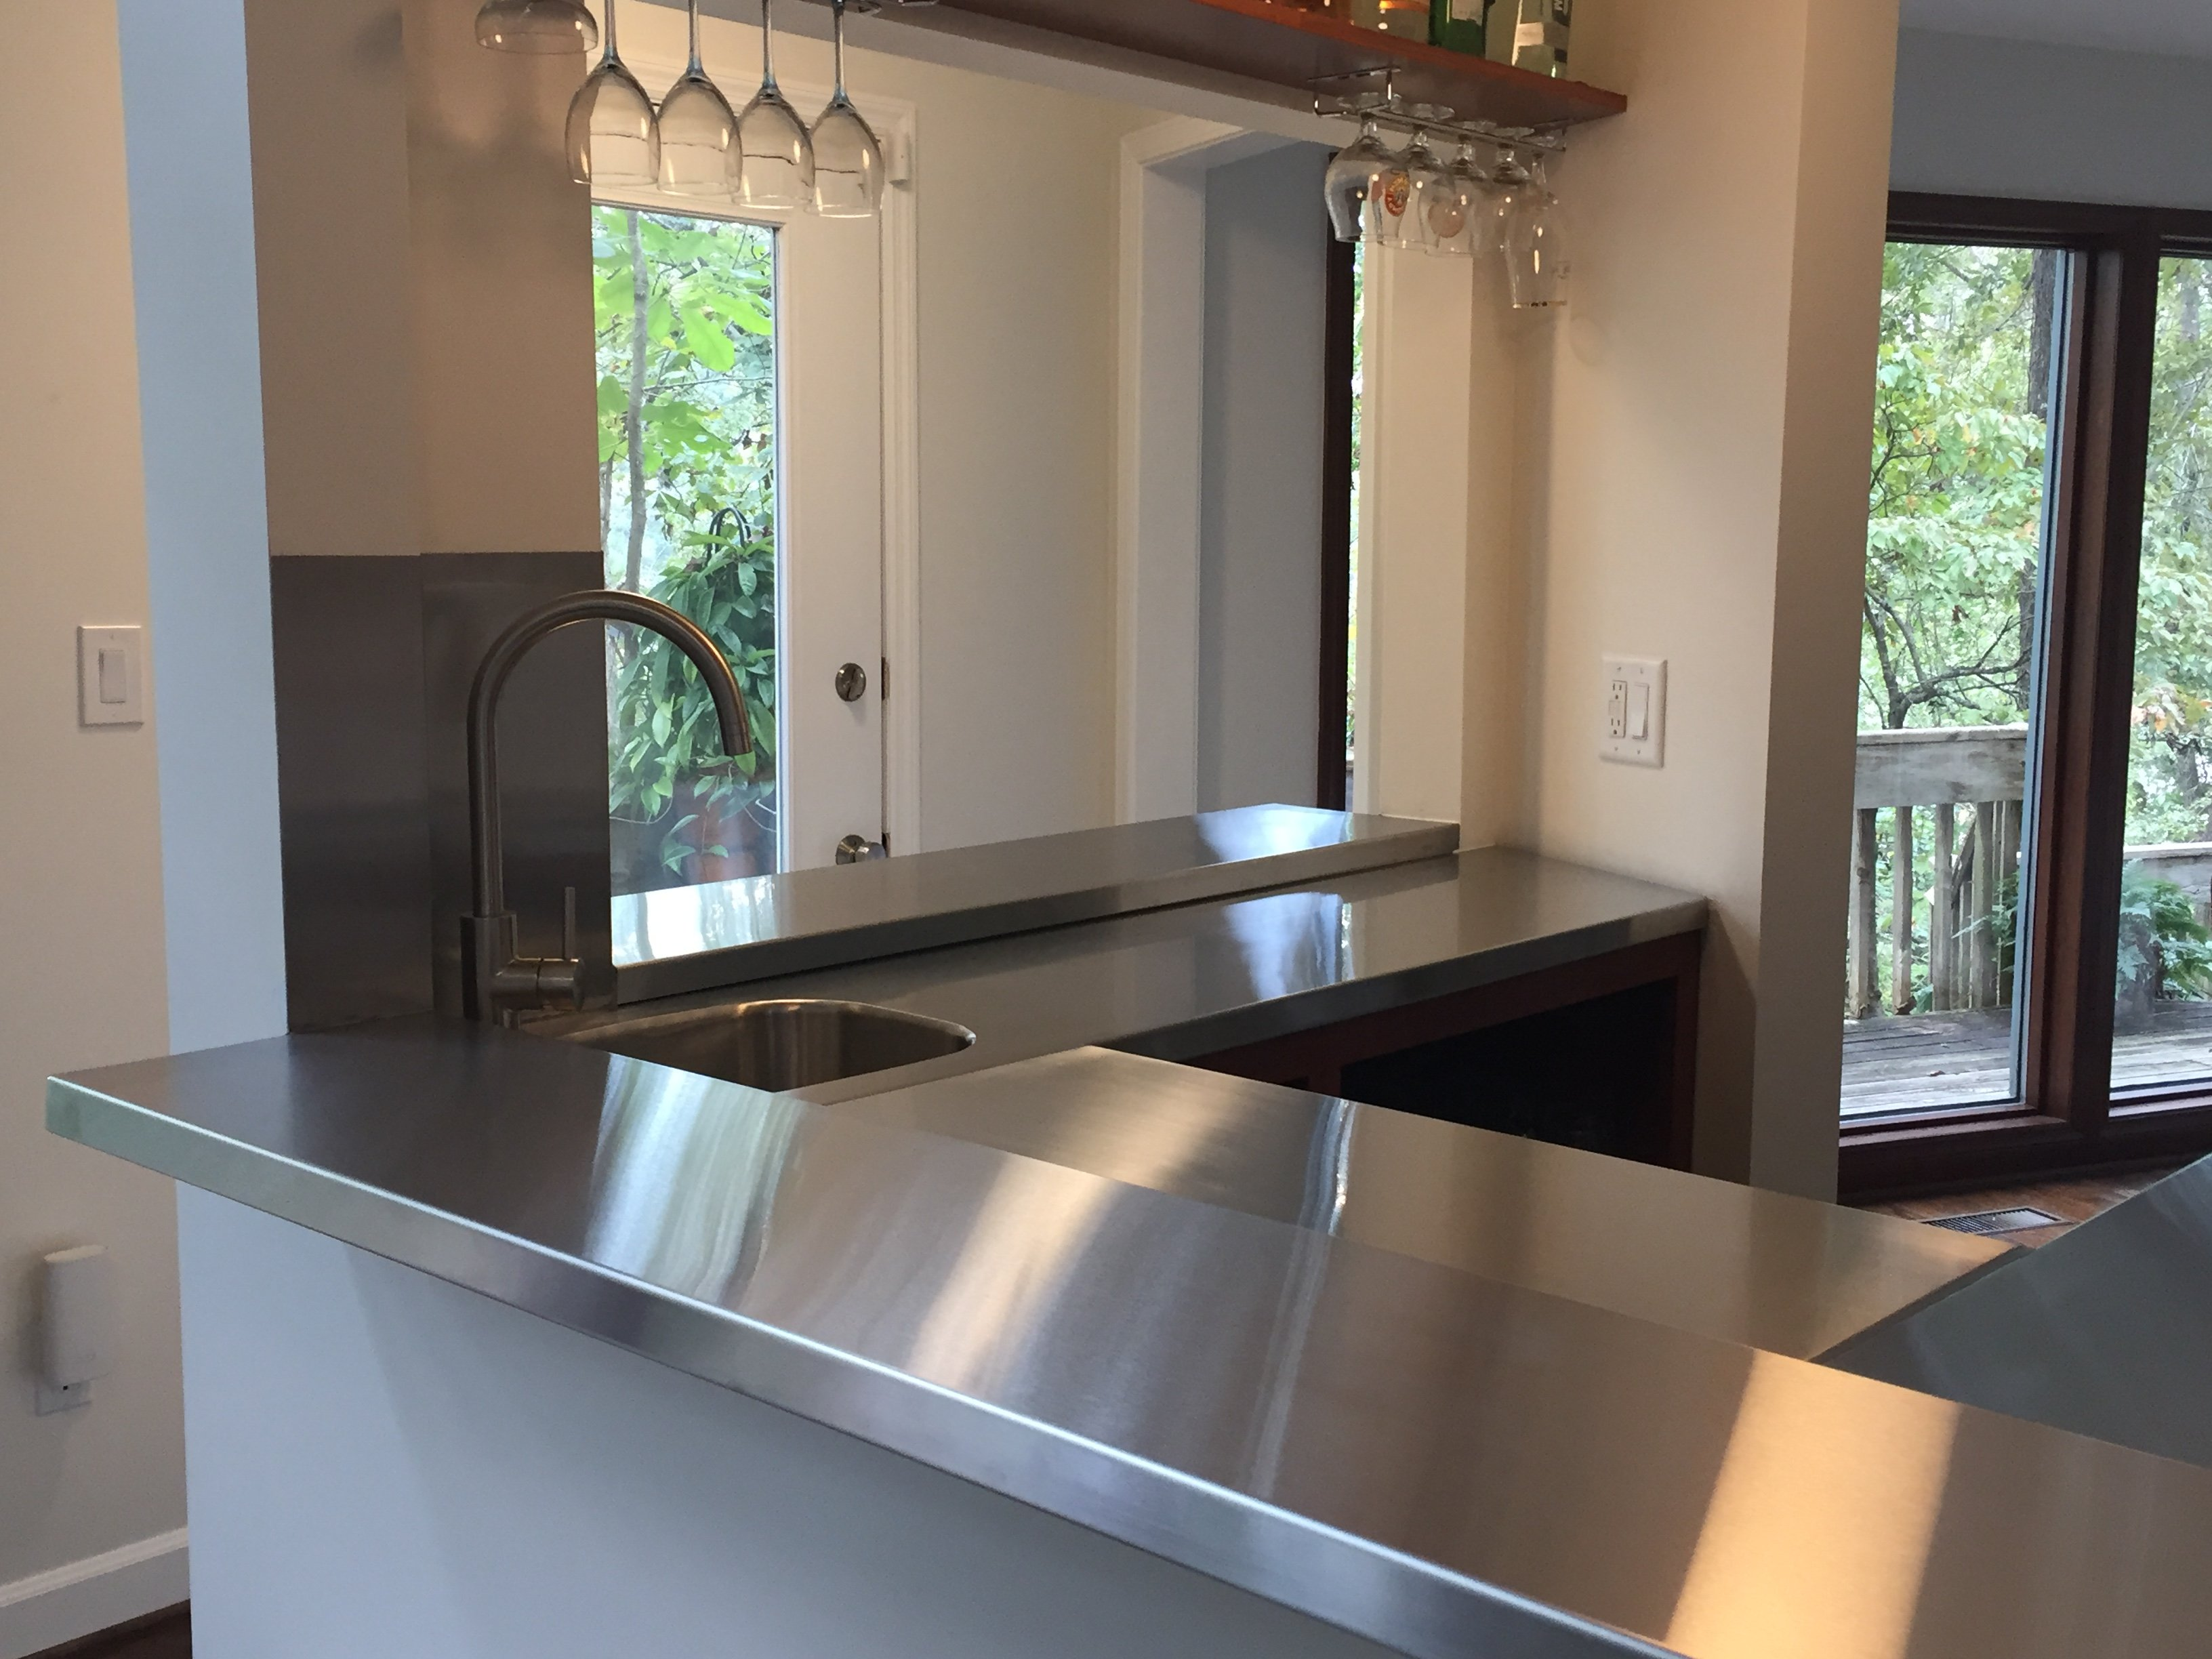 Maintain Stainless Steel Countertop and Backsplash